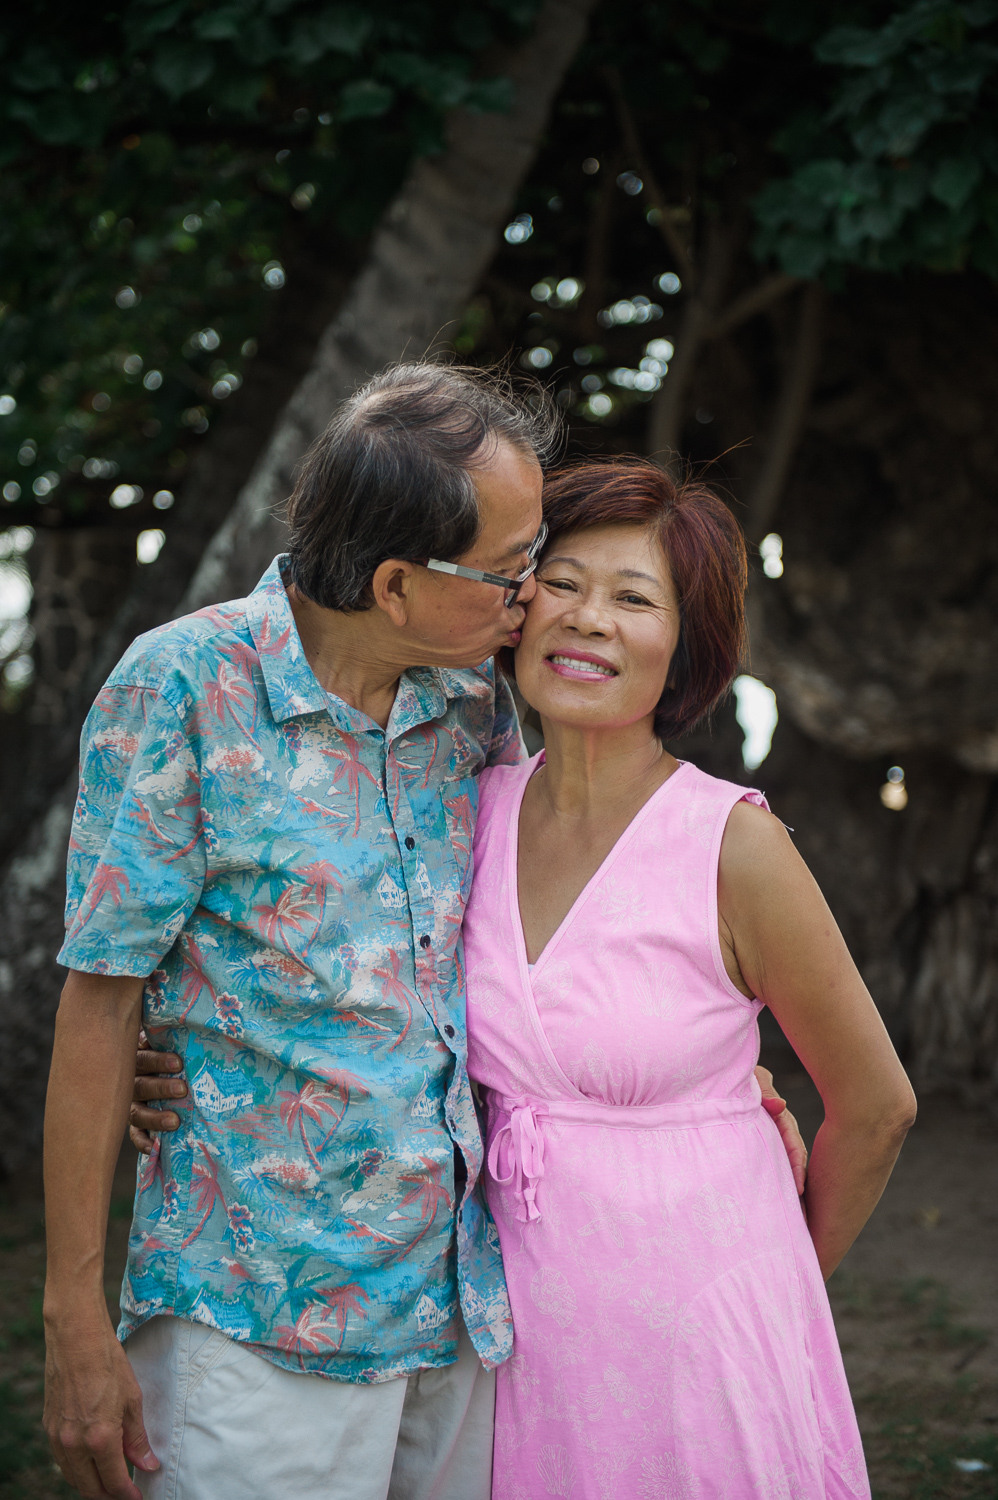 Man in blue shirt kissing wife in pink dress